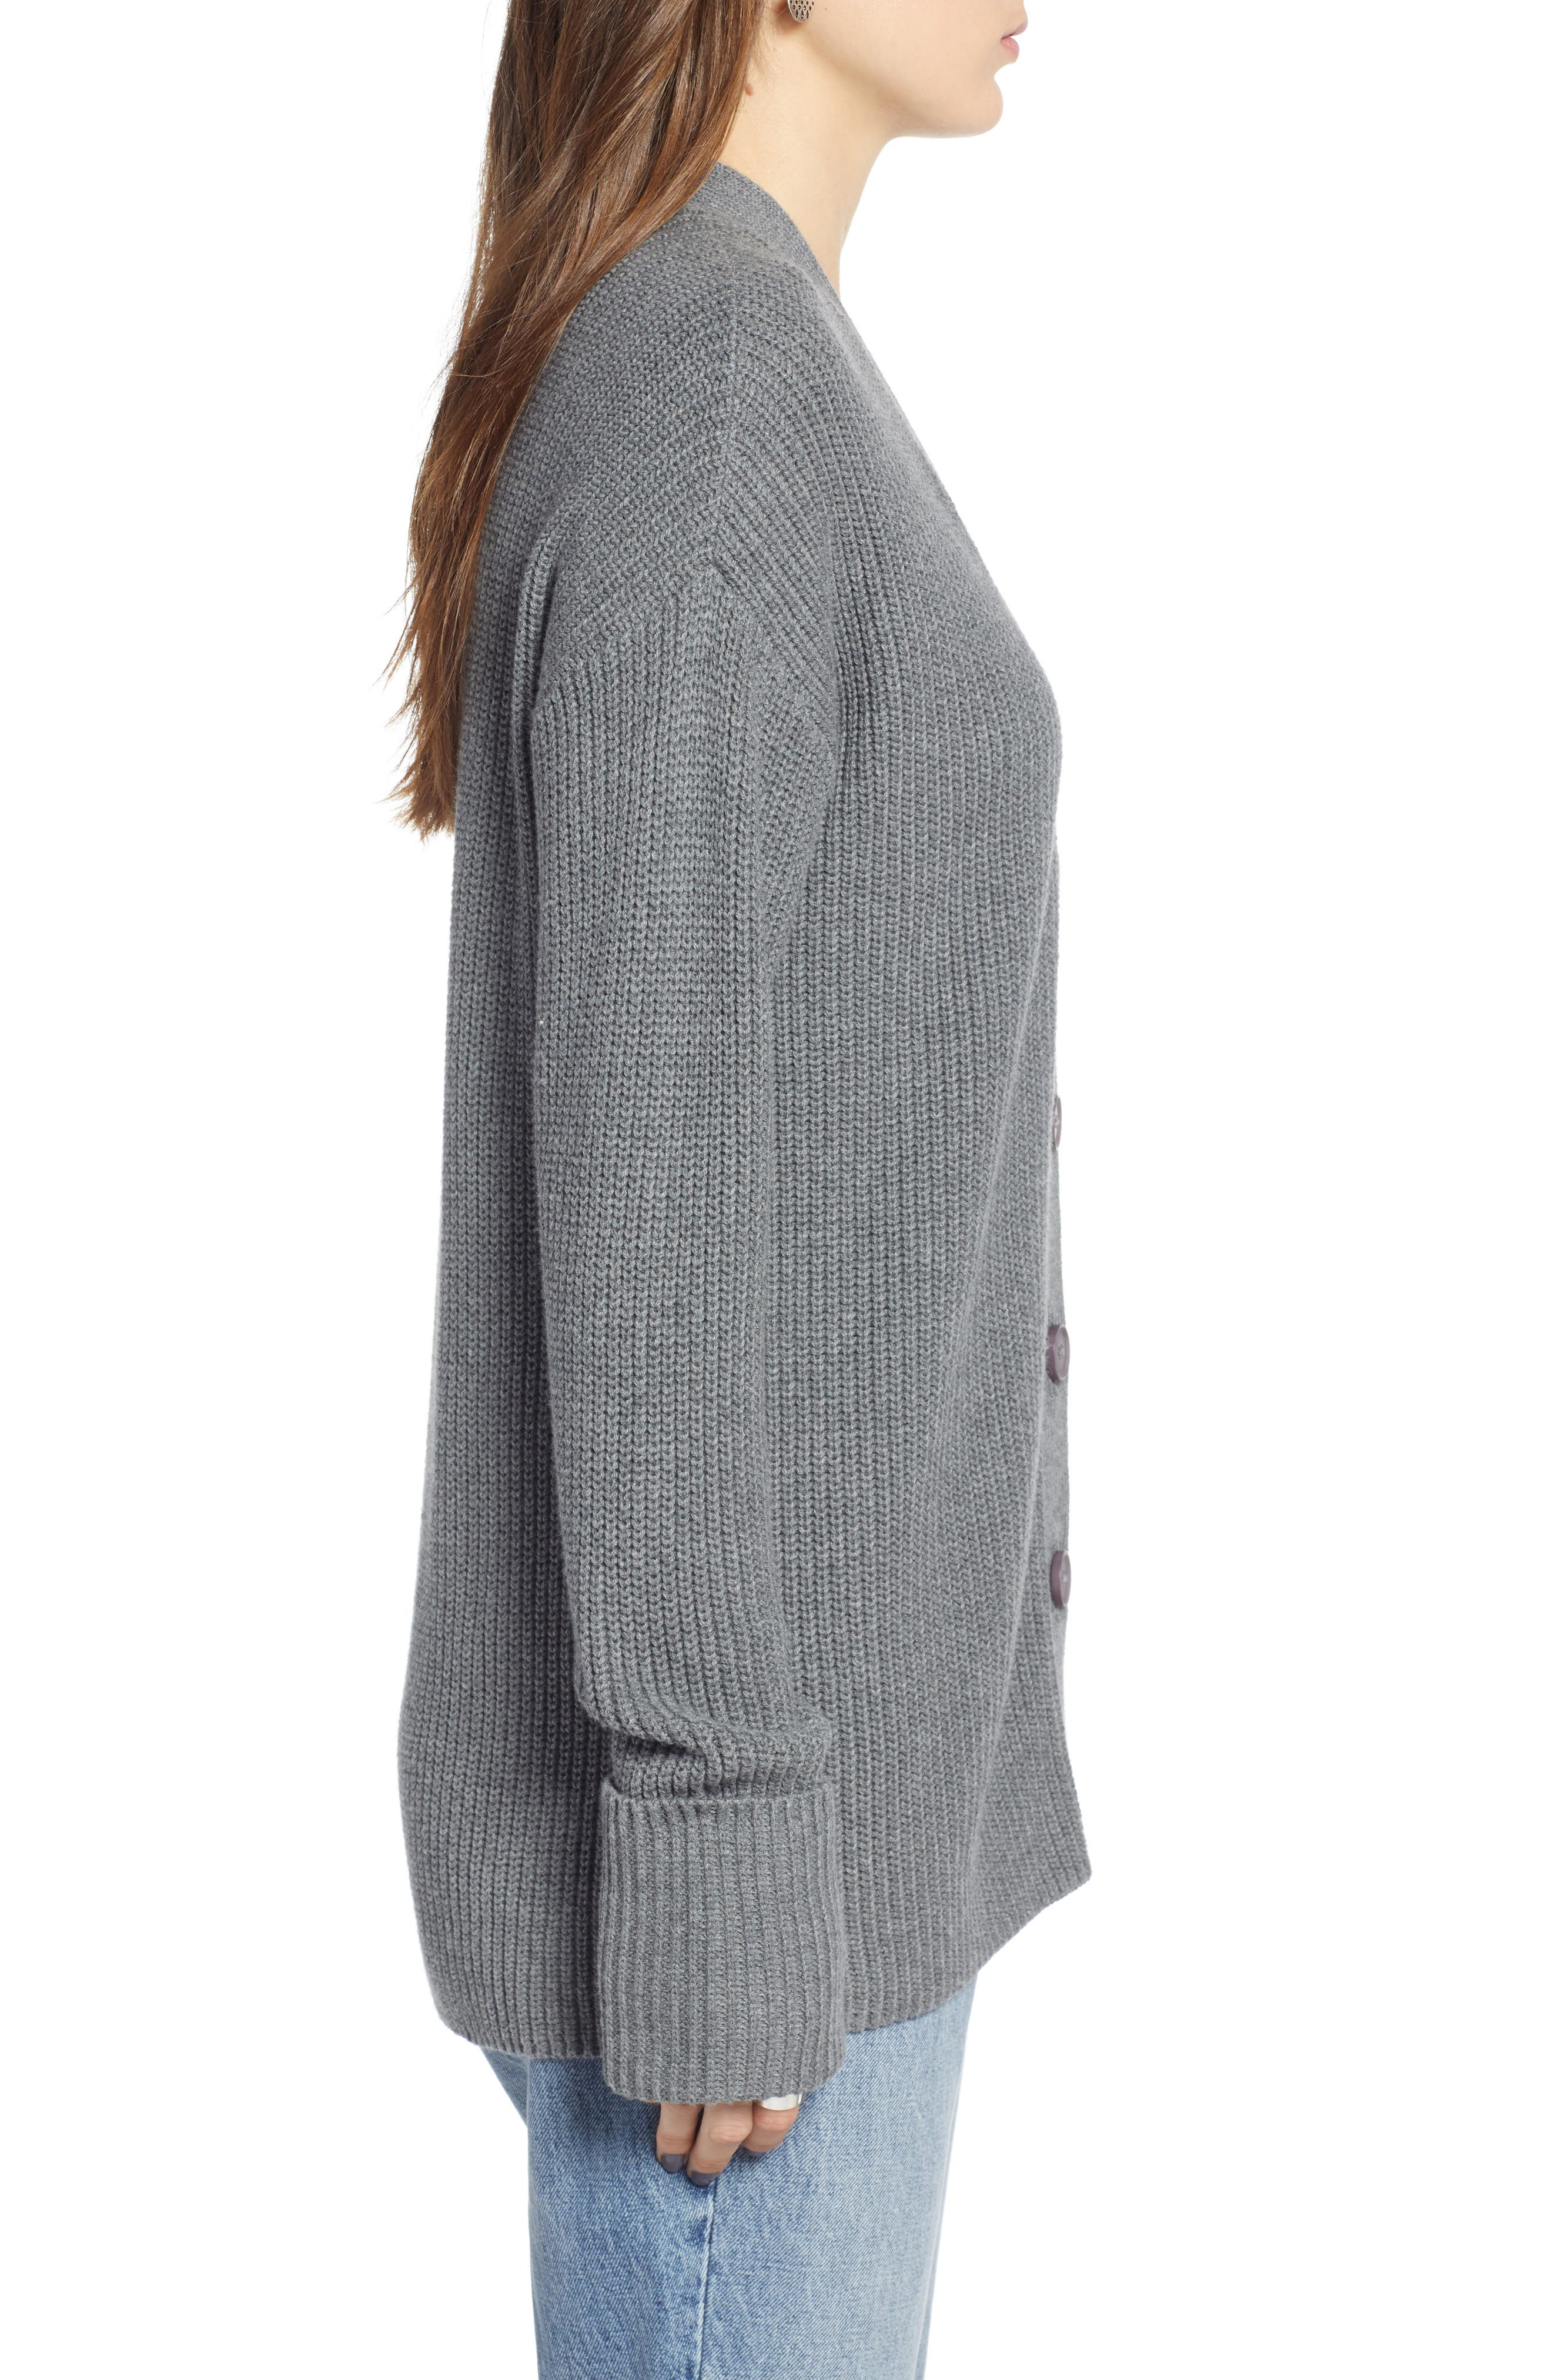 Ribbed Cardigan Sweater,                             Alternate thumbnail 3, color,                             GREY DARK HEATHER